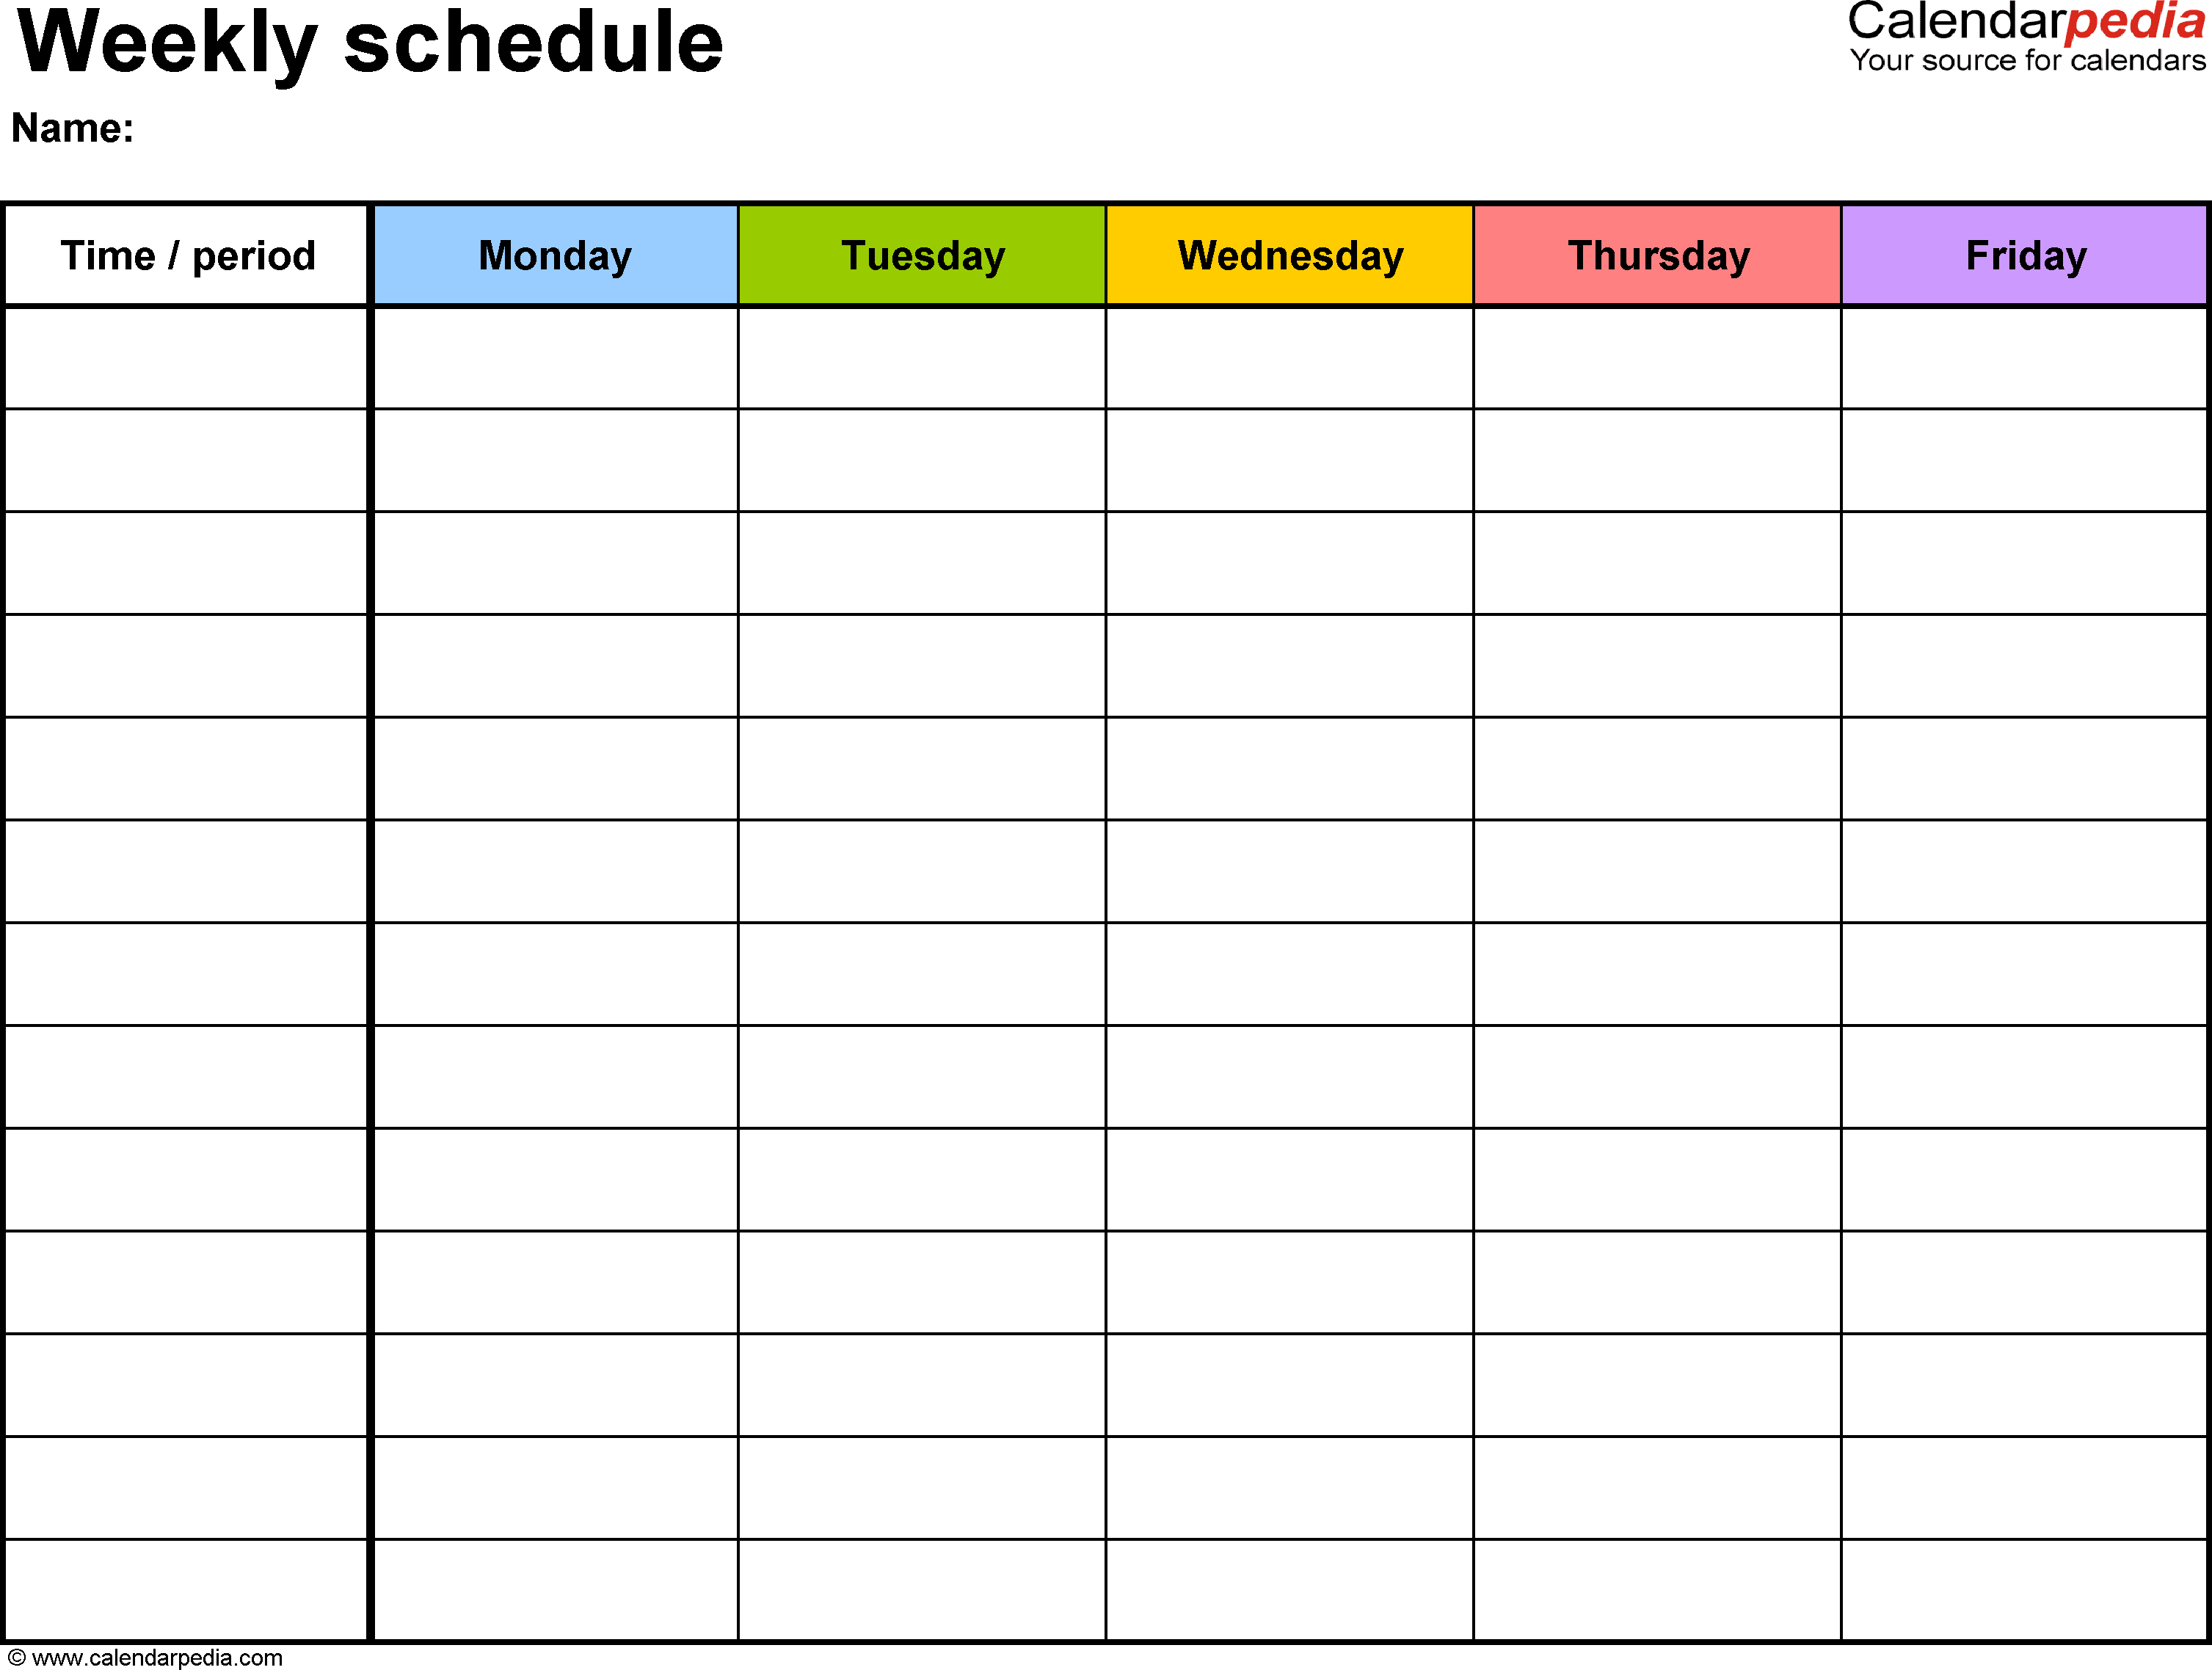 Free Weekly Schedule Templates For Excel - 18 Templates intended for Days Of The Week Schedules Free Template